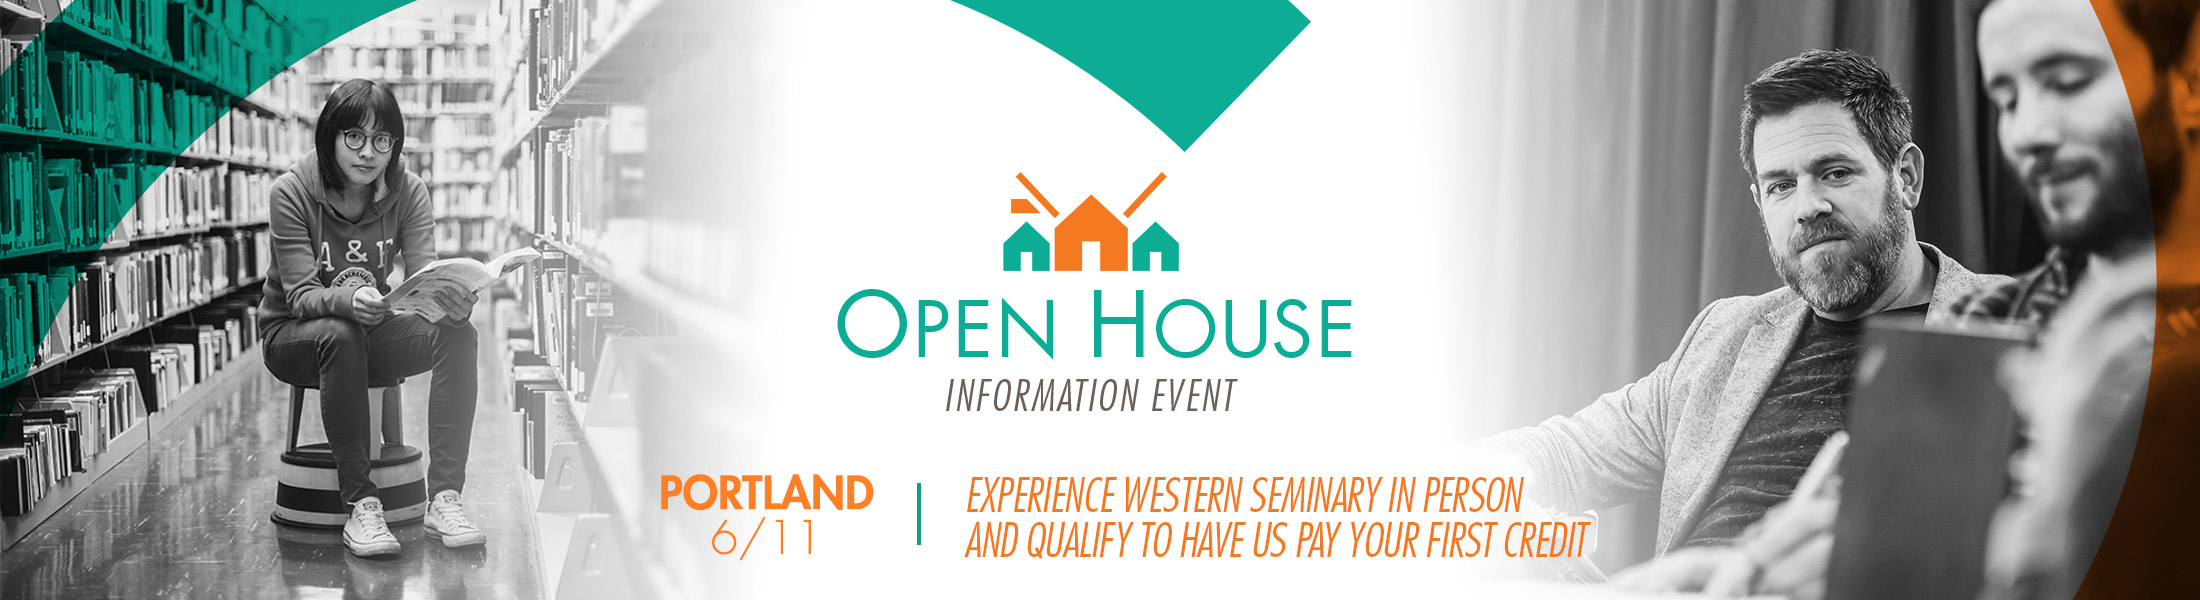 Open House Info Event